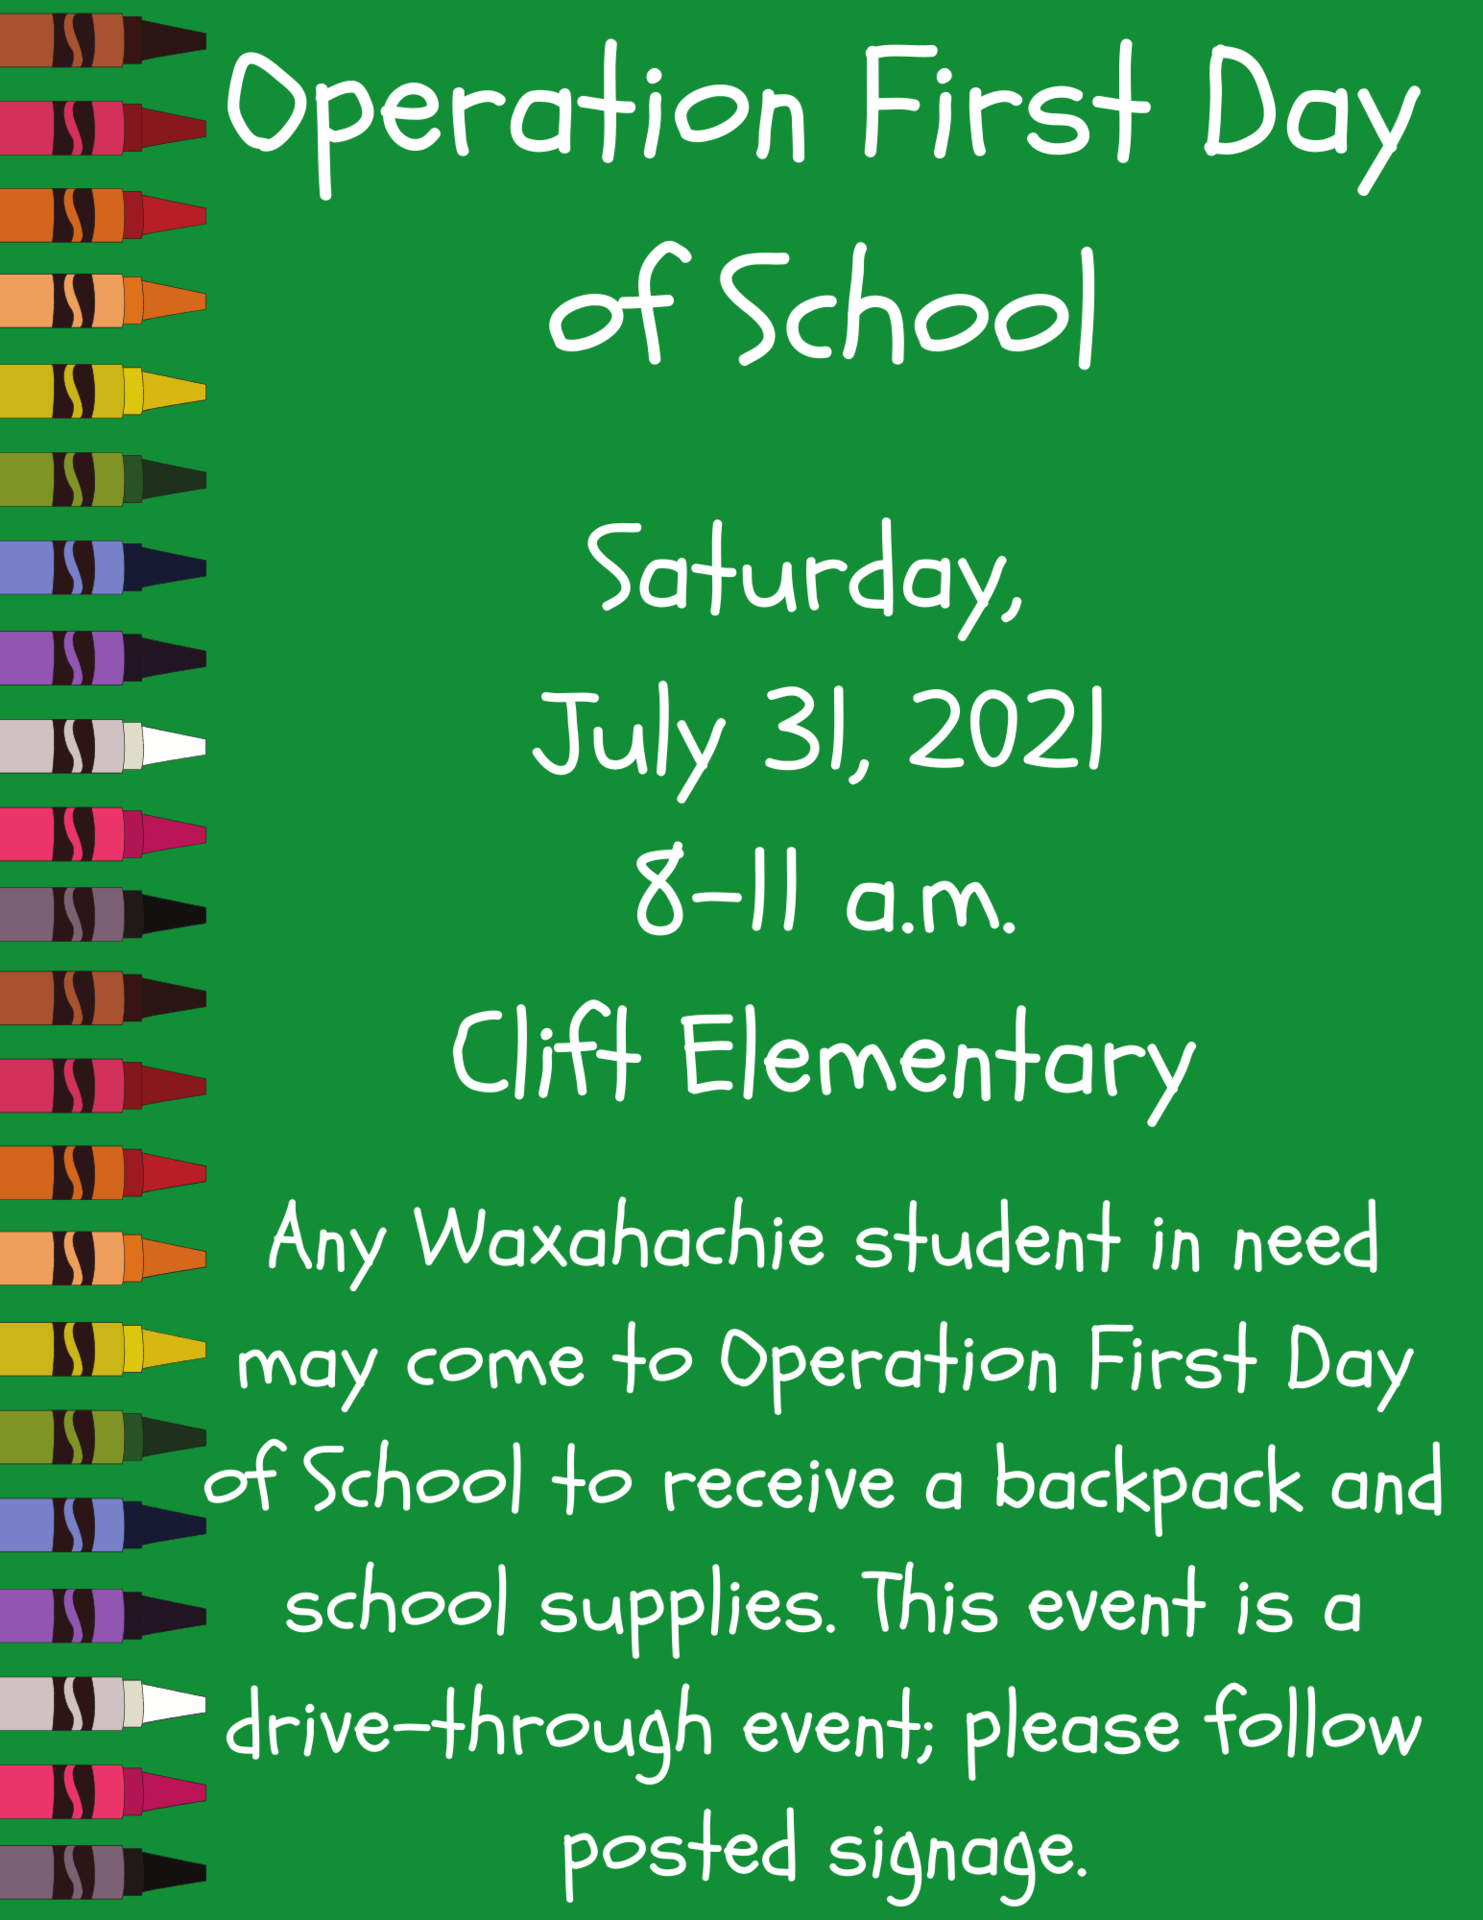 graphic with colorful crayons describes operation first day of school is on July 31 at 8 am at Clift Elemetnary